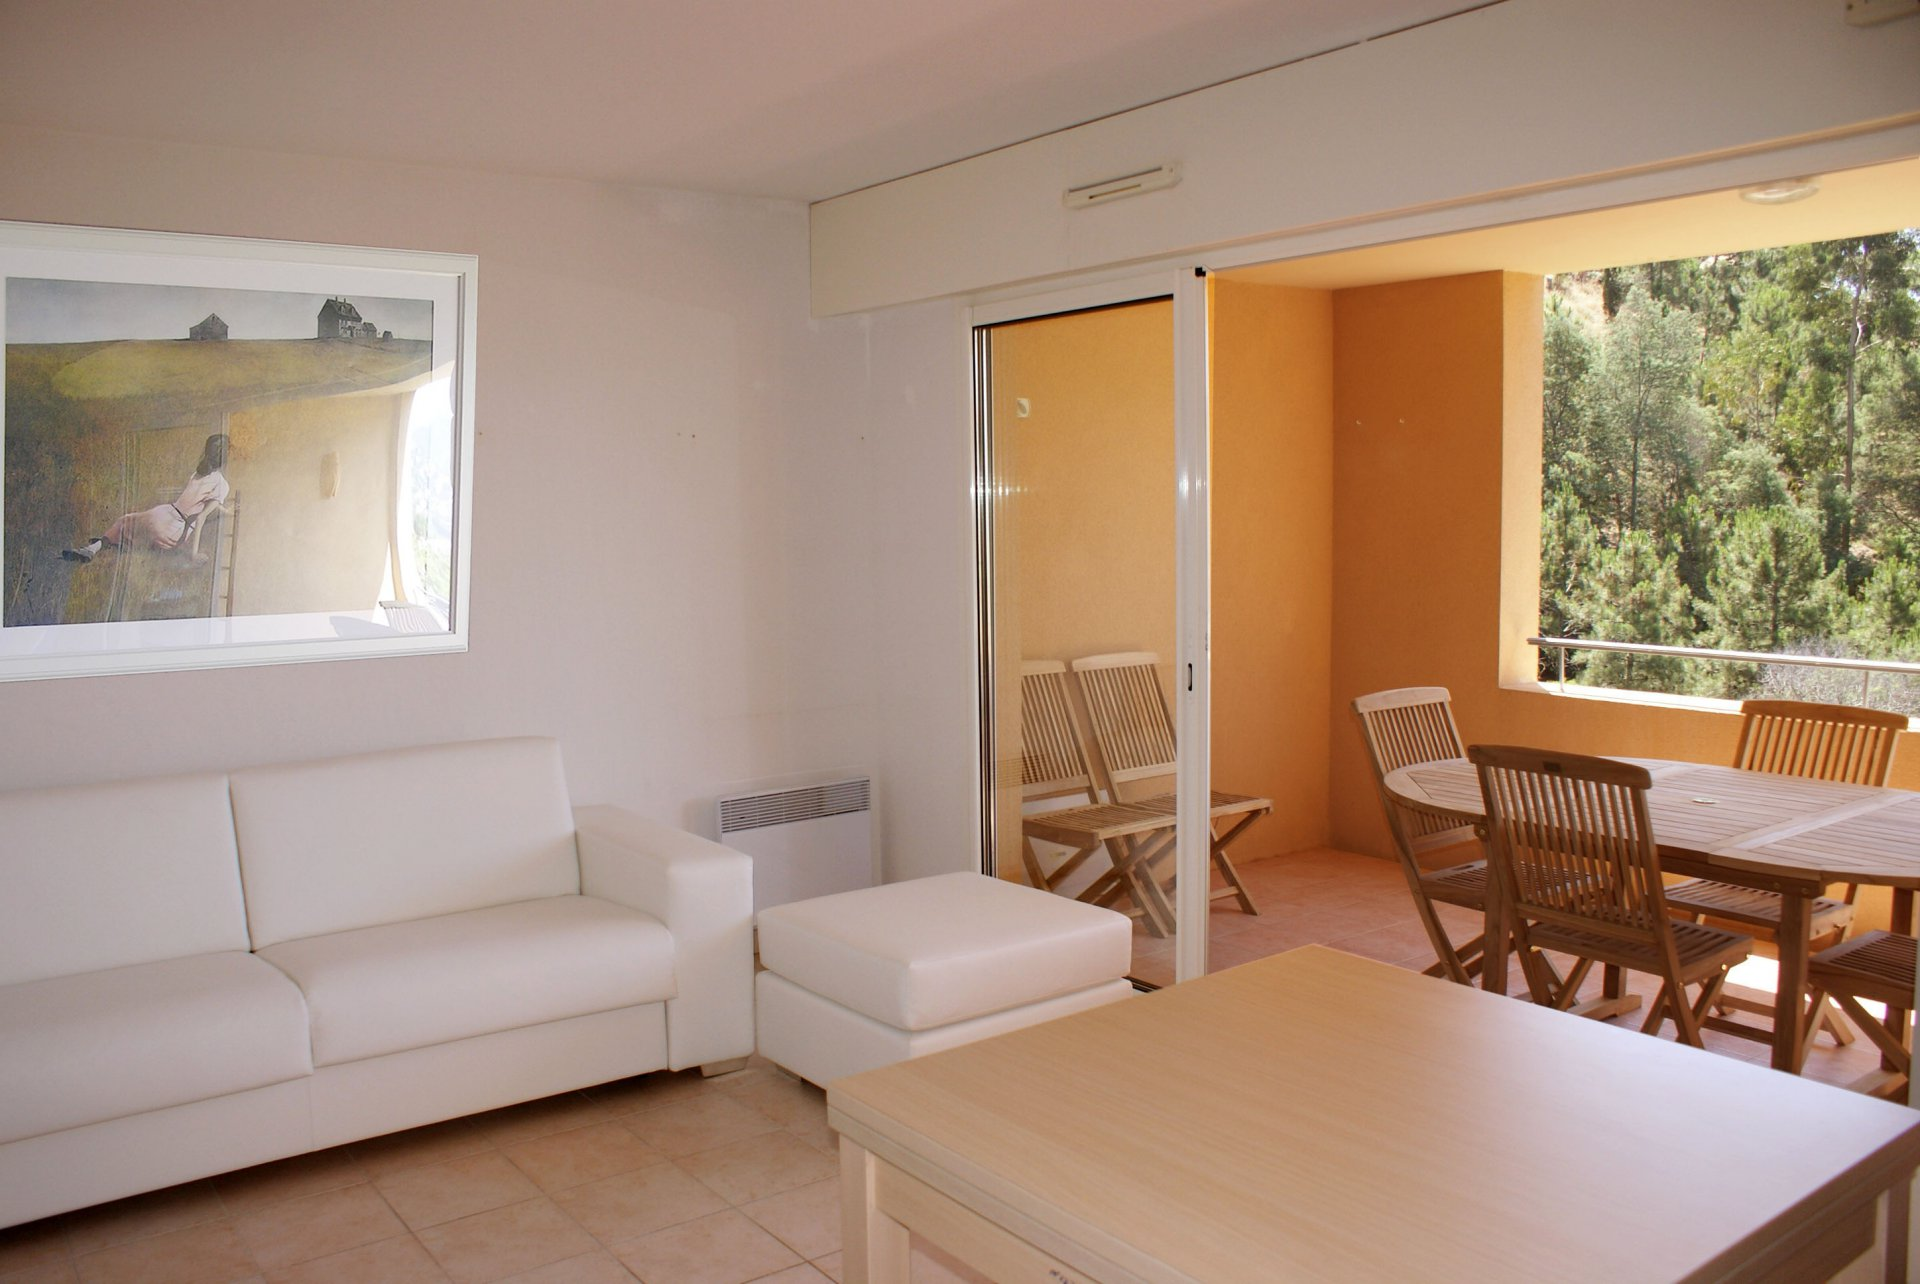 living room, bed room (4 sleeps) kitchen, washing machine, dishwasher large terrasse sea view  * RO 217 *